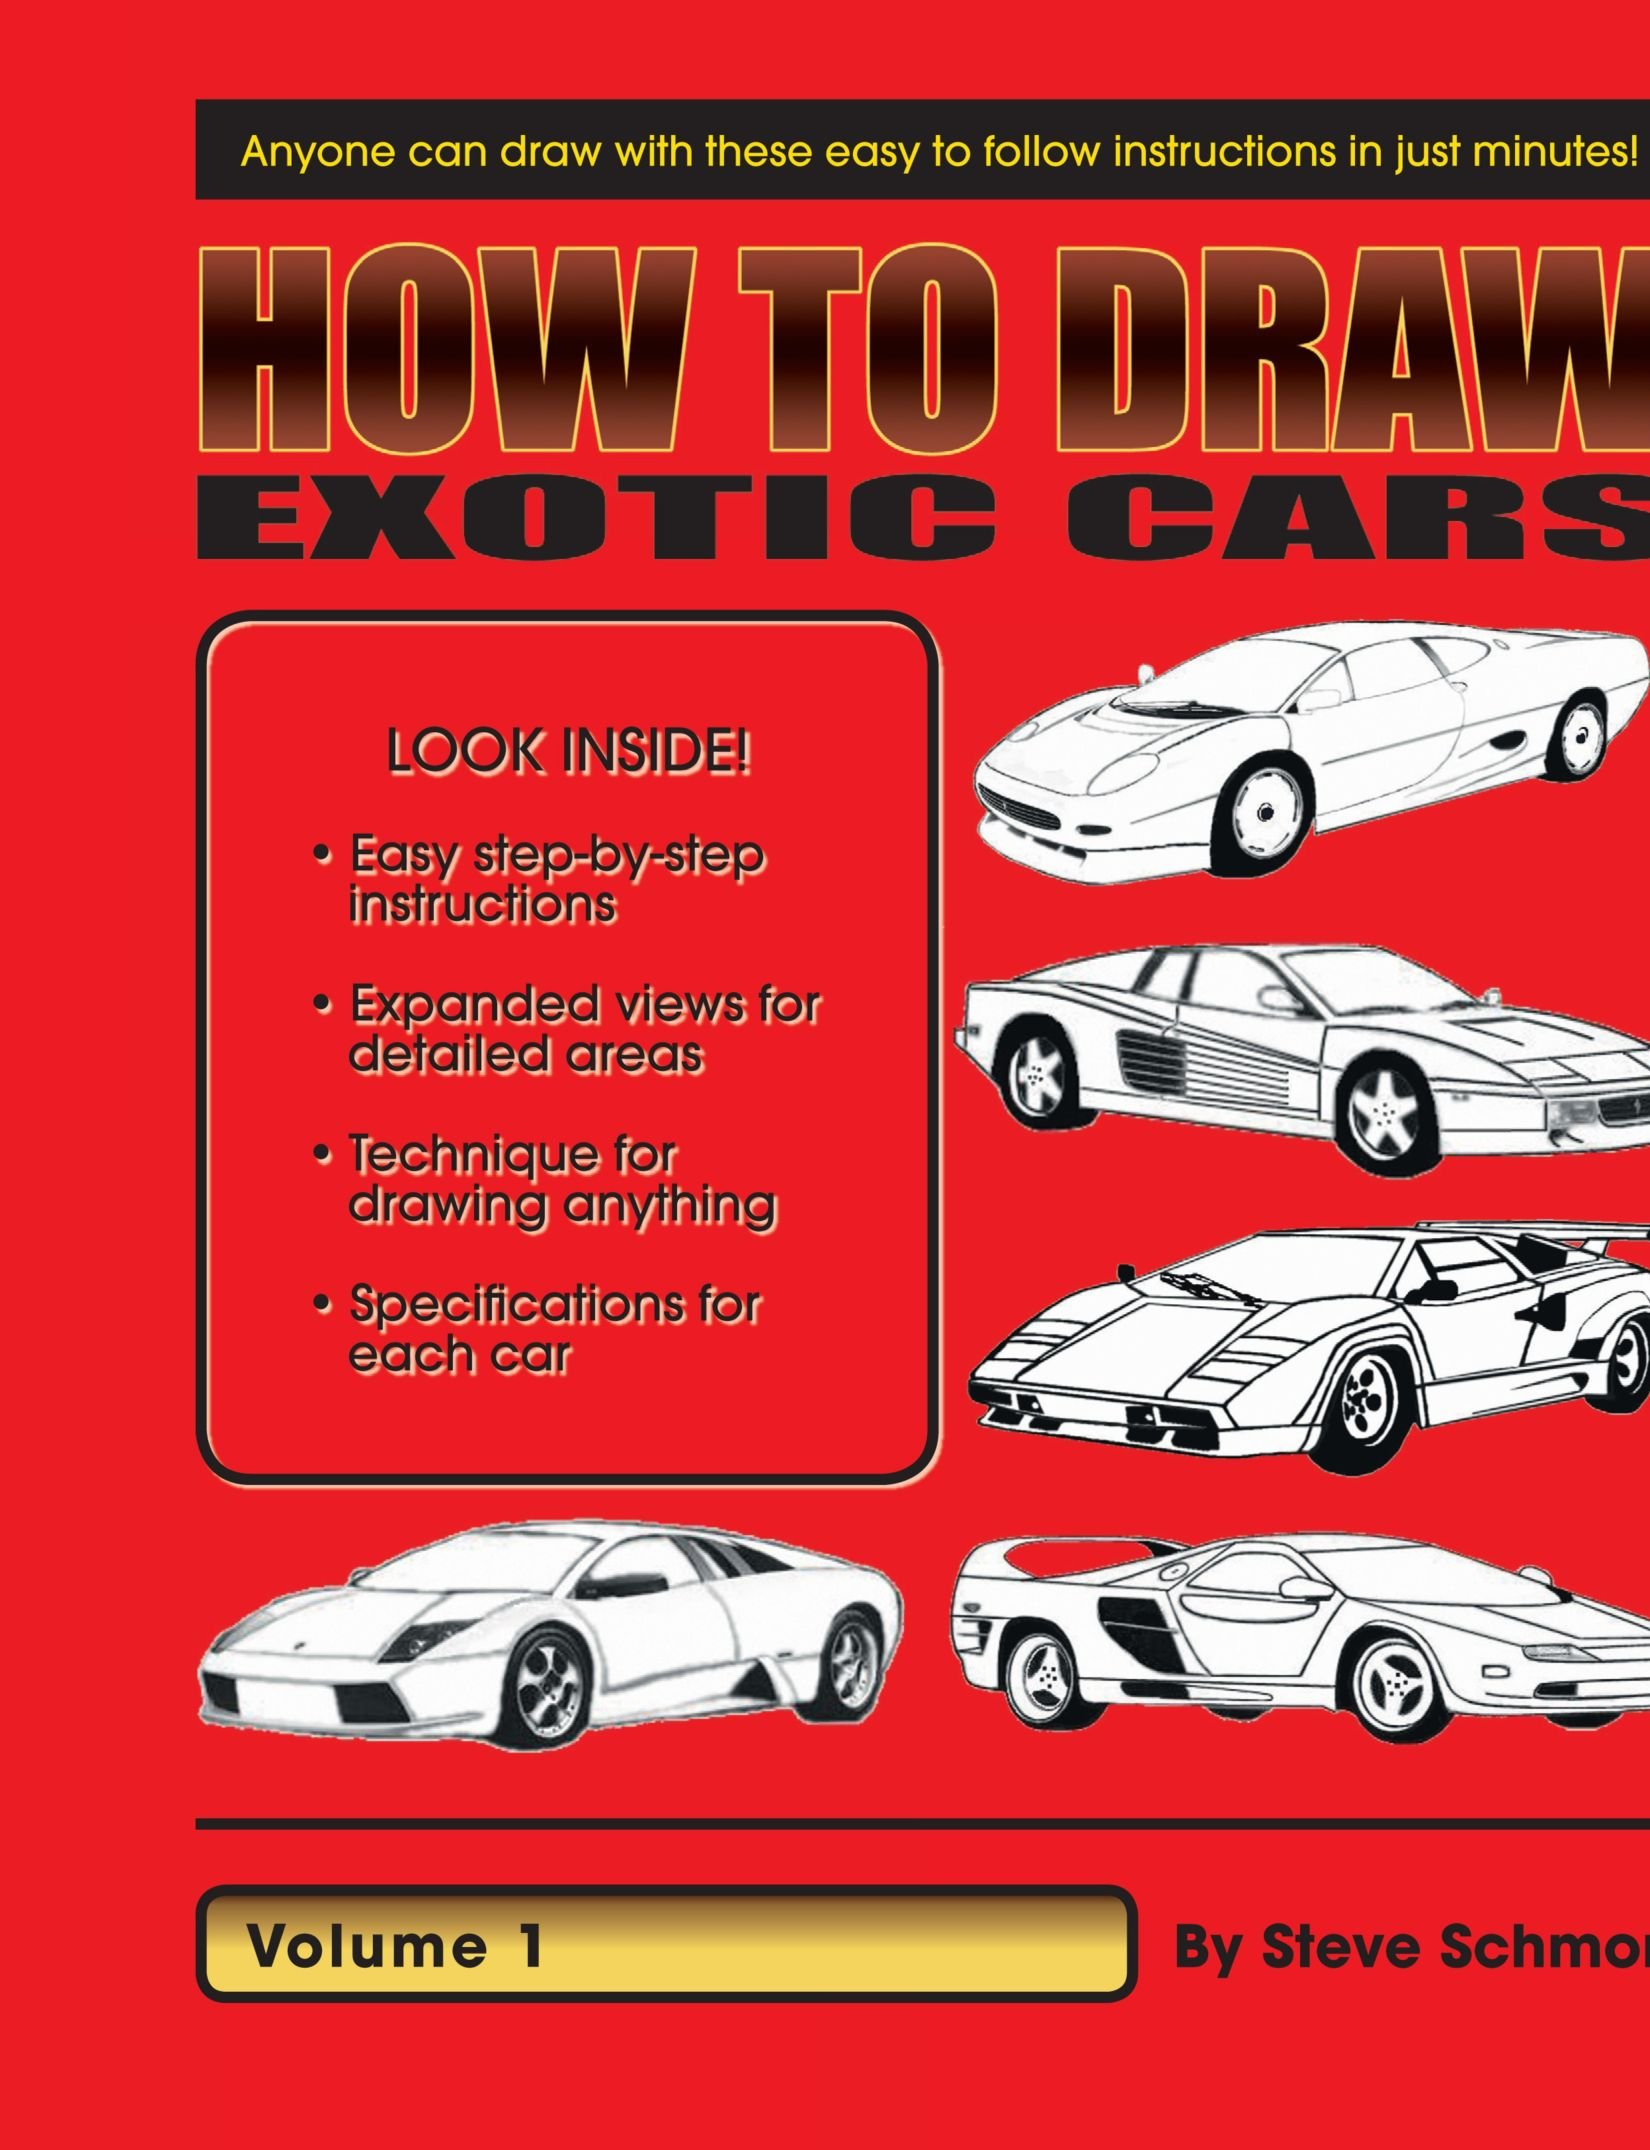 How To Draw Exotic Cars Volume 1 Steve Schmor 9781412037662